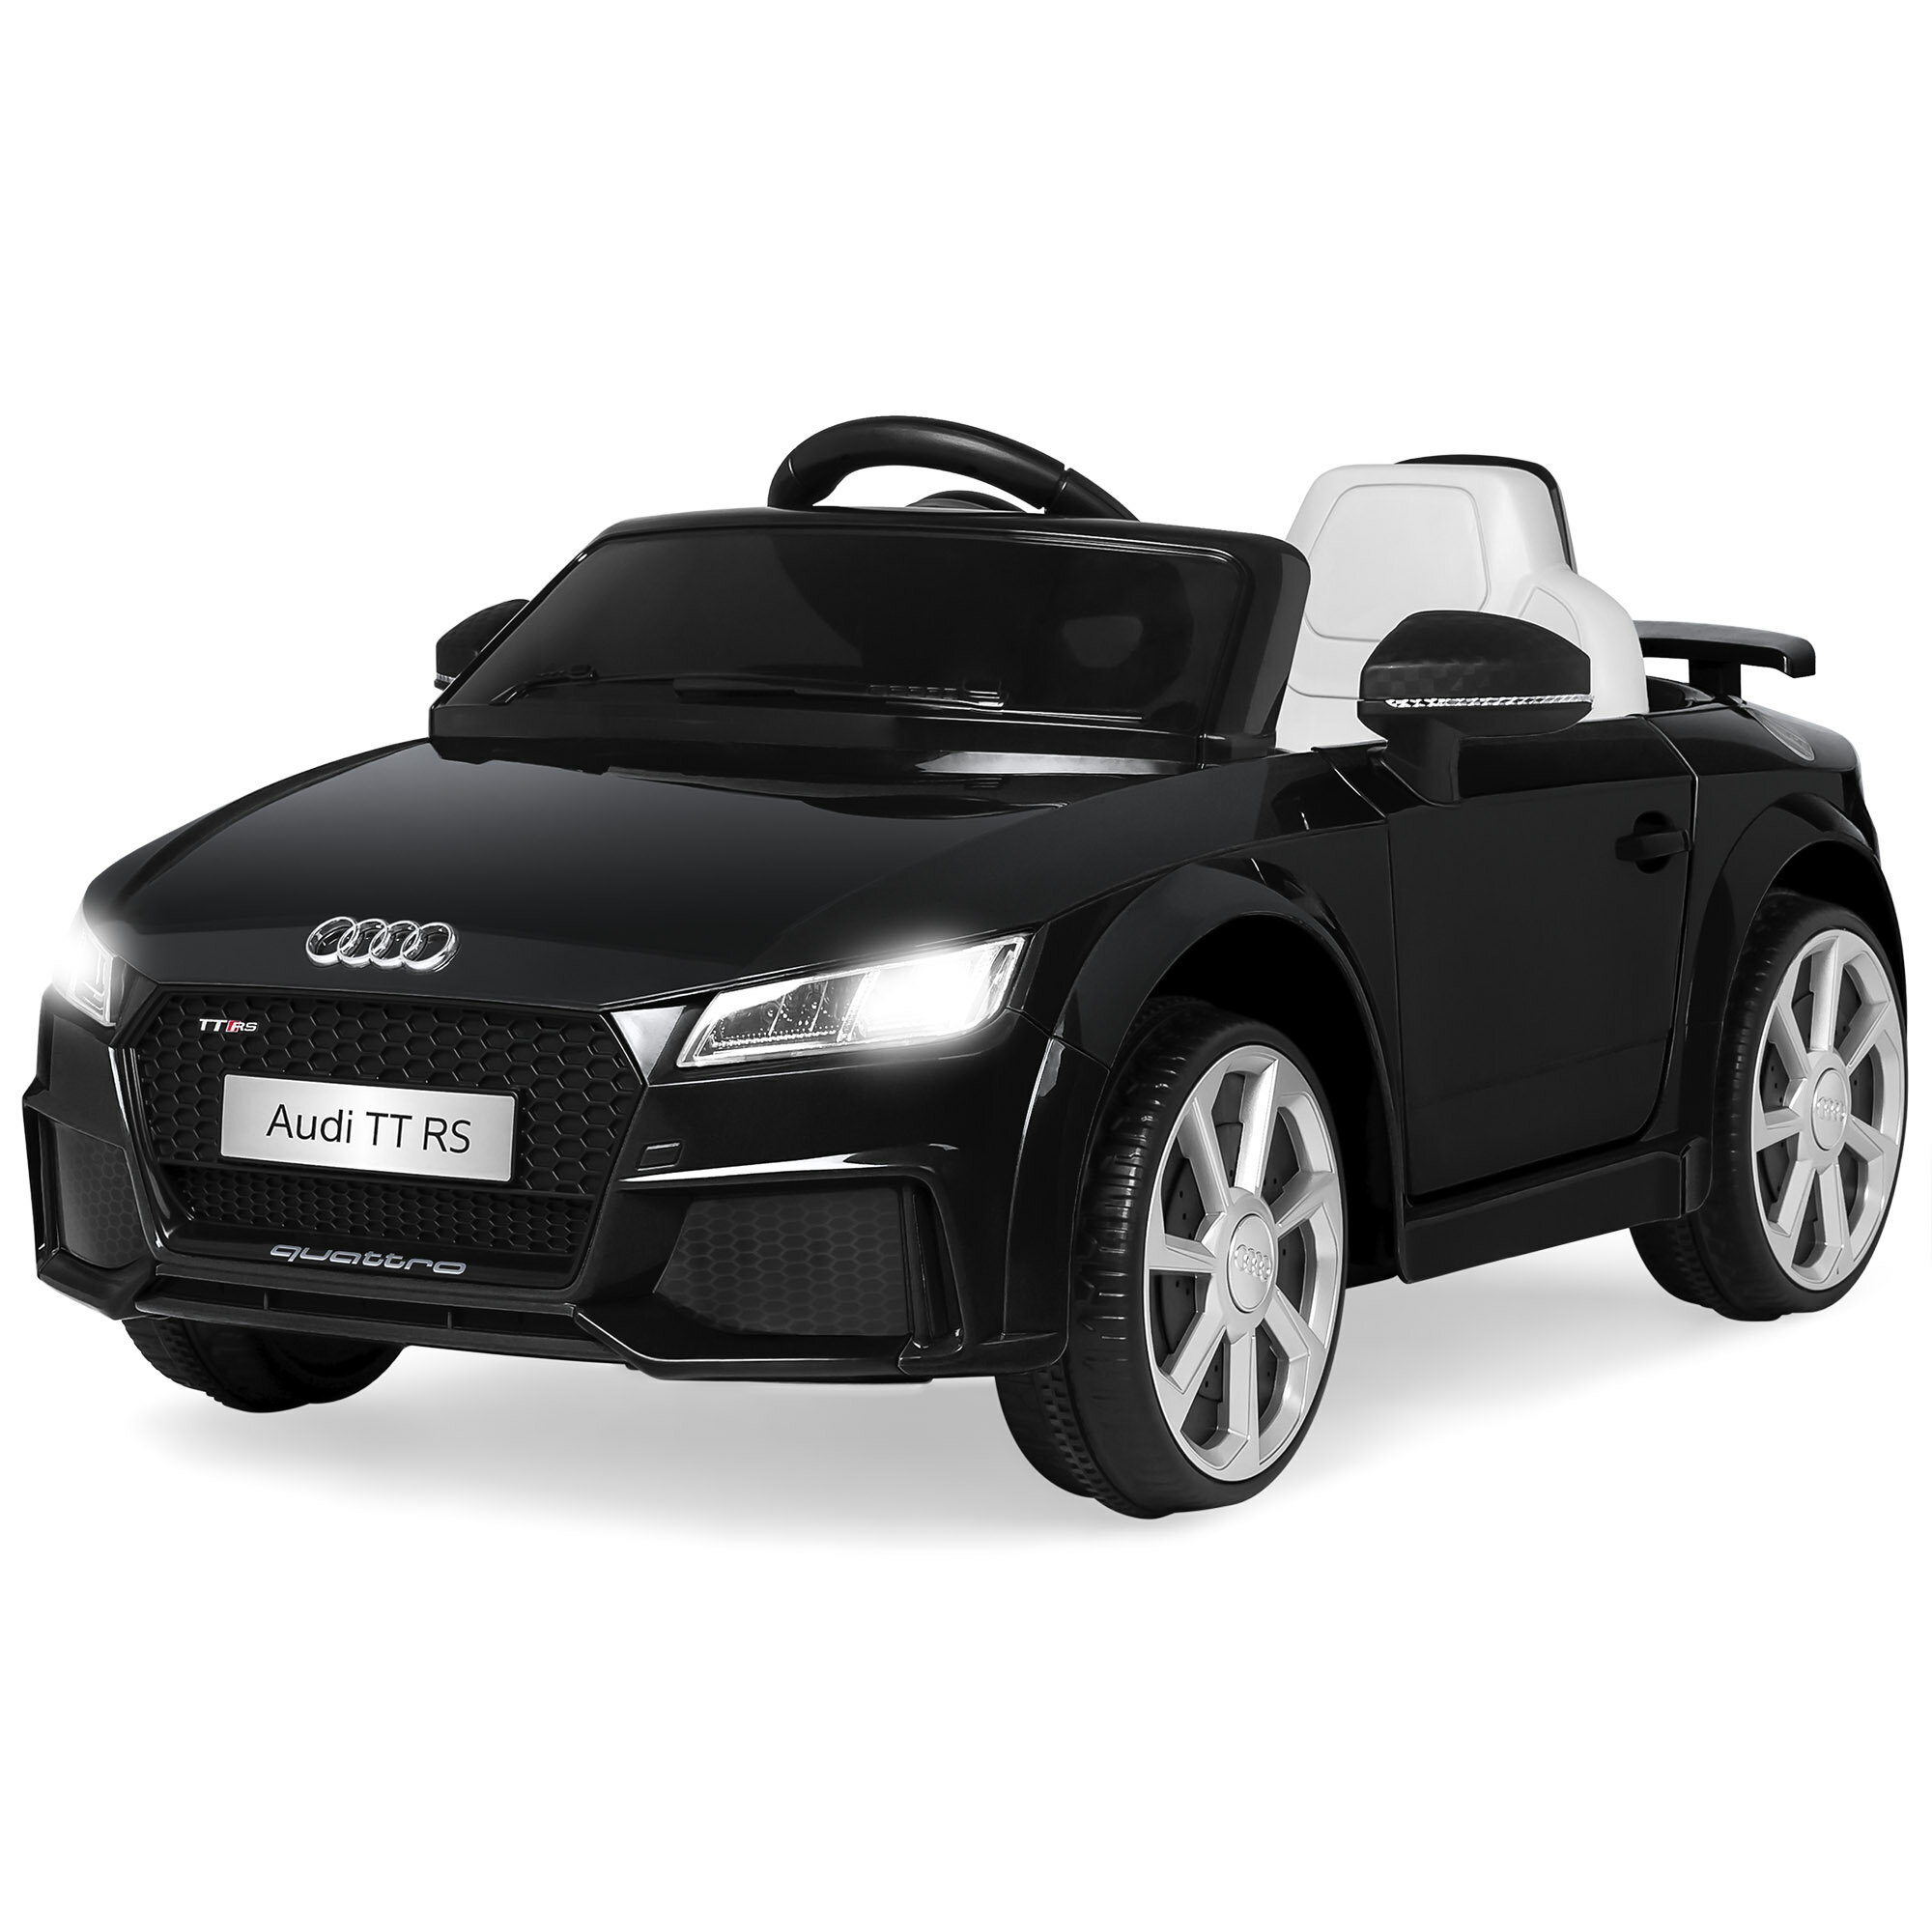 Amazing Best Choice Products 6V Kids Audi TT RS Ride On Car W/ Parent Control,